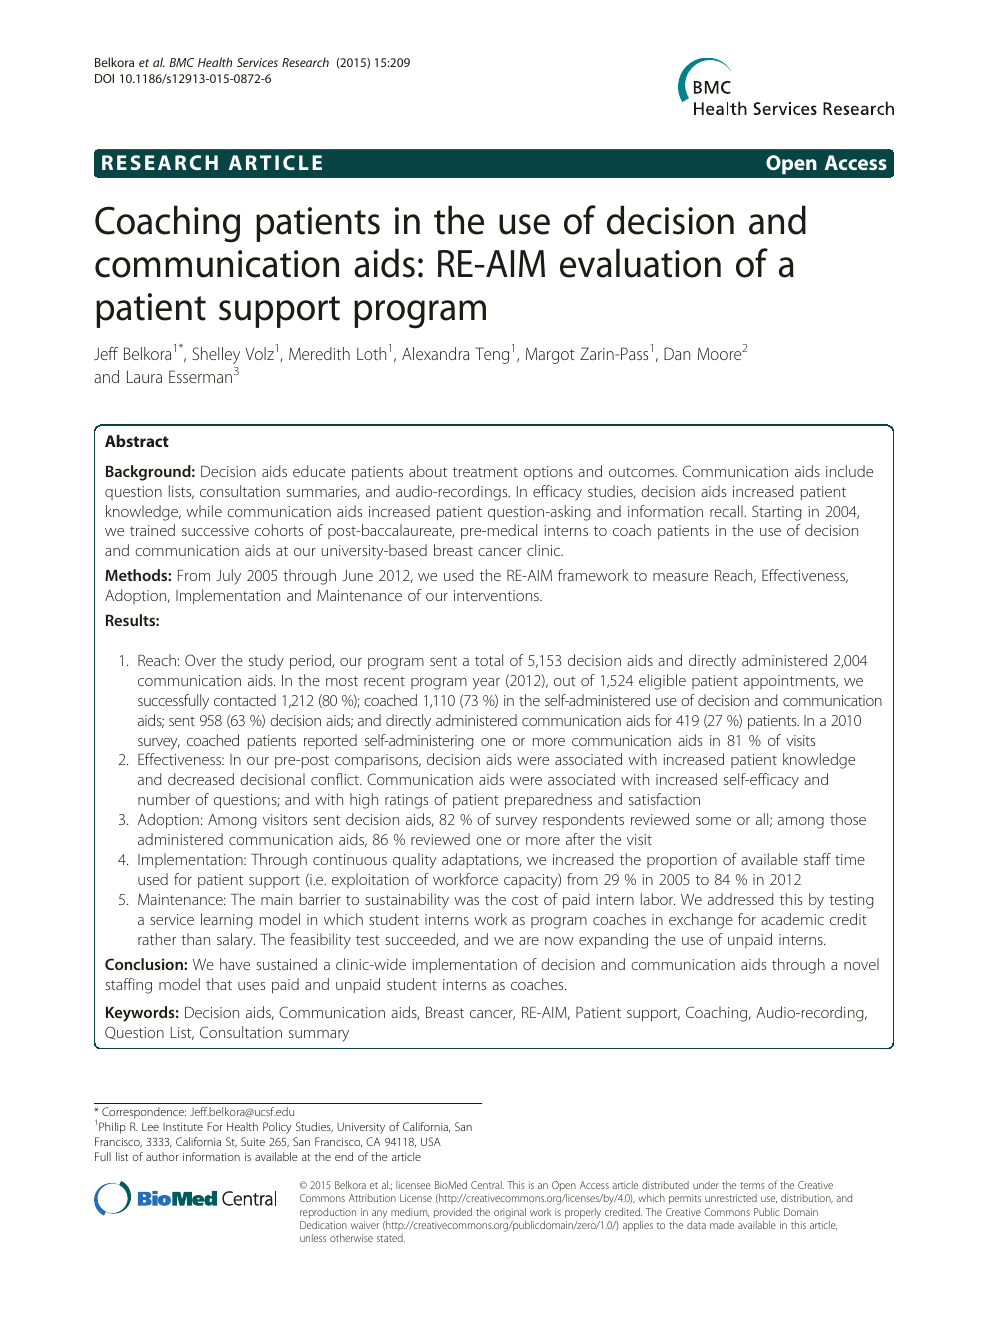 Coaching patients in the use of decision and communication aids: RE